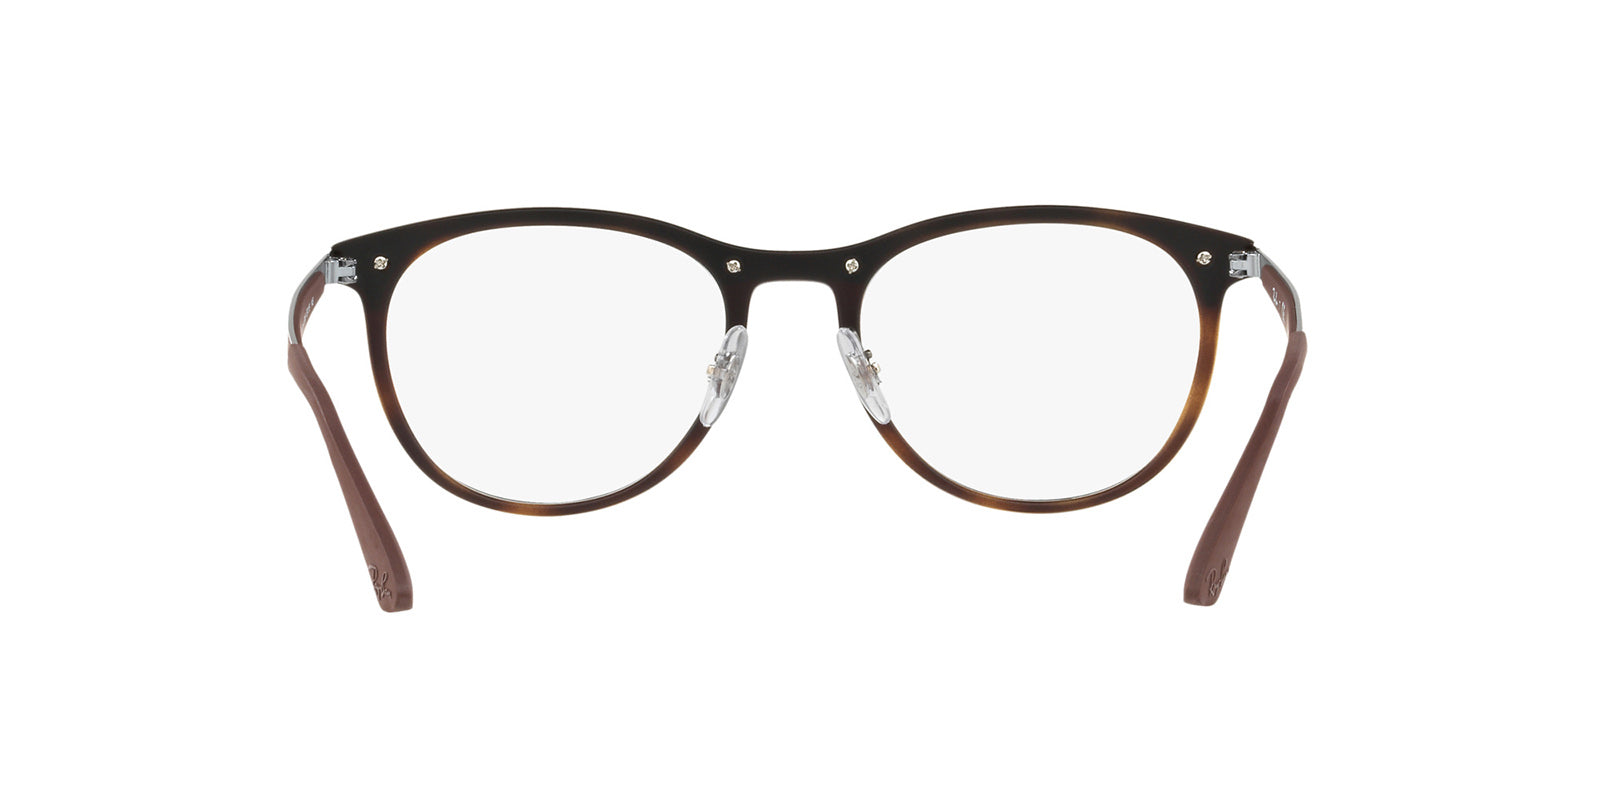 Rayban Eyeglasses RB7116 8016 Rx-ABLE